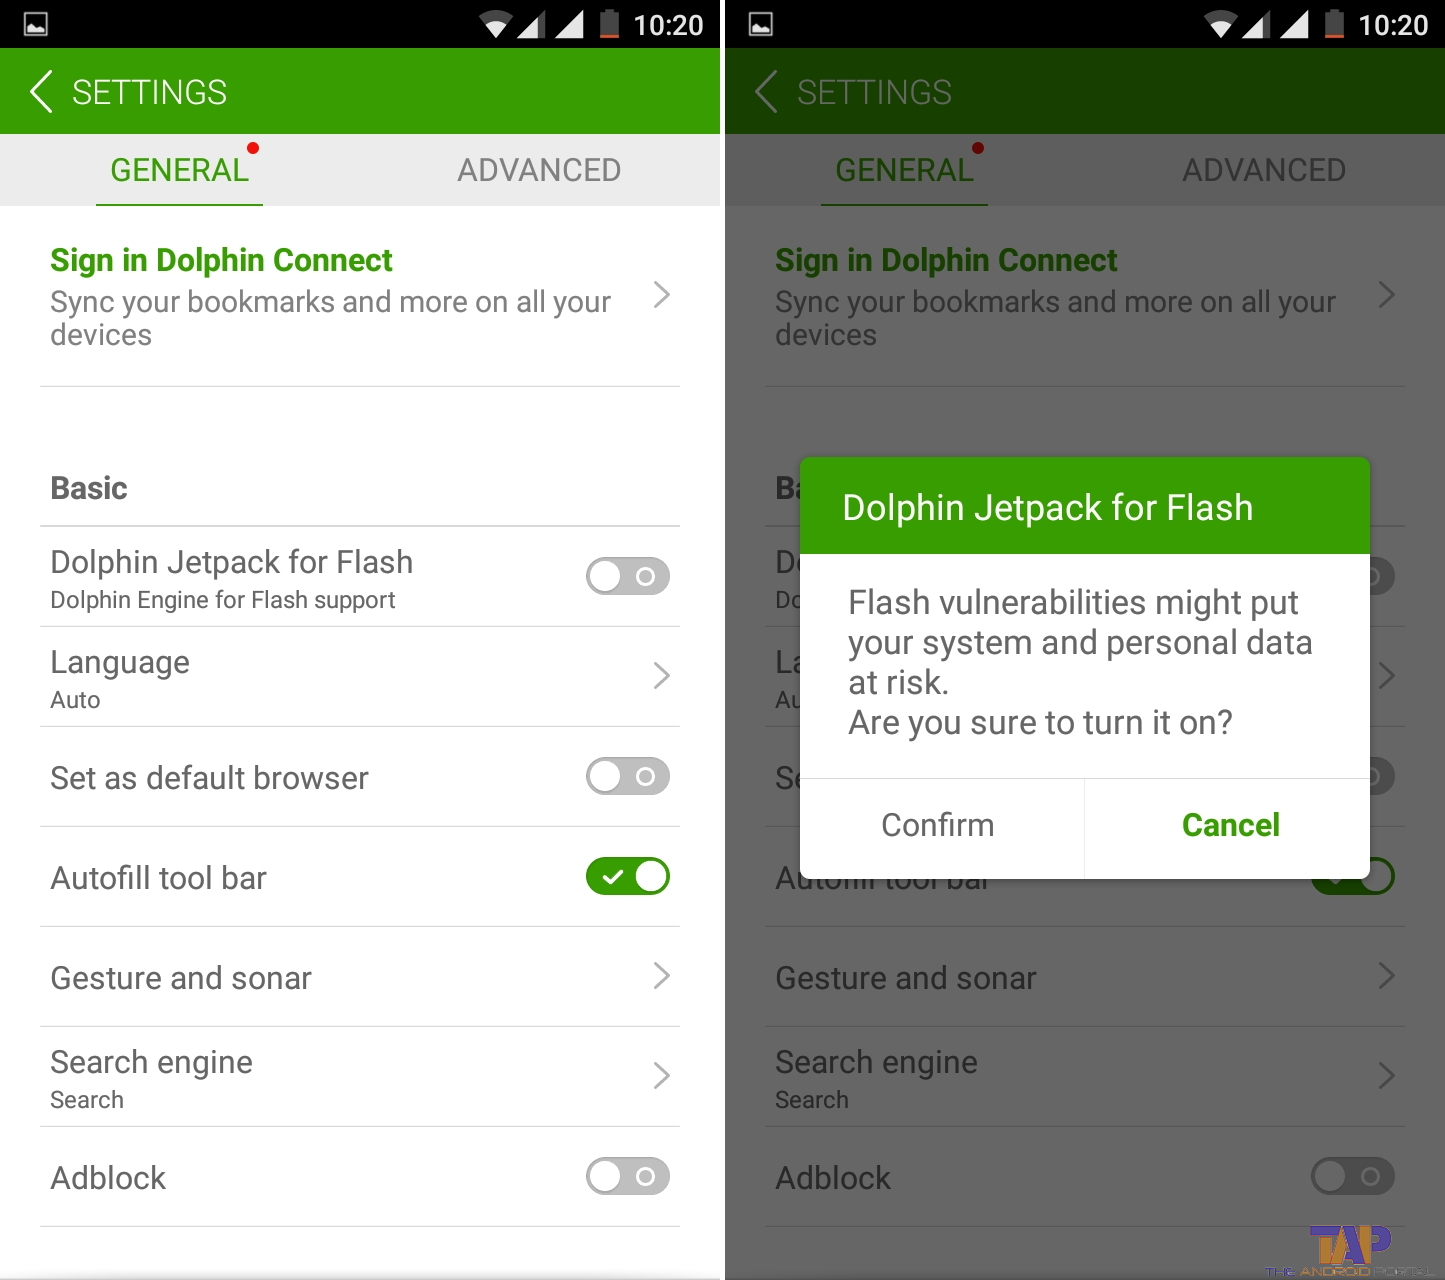 click on Setting icon to open Dolphin Browser settings